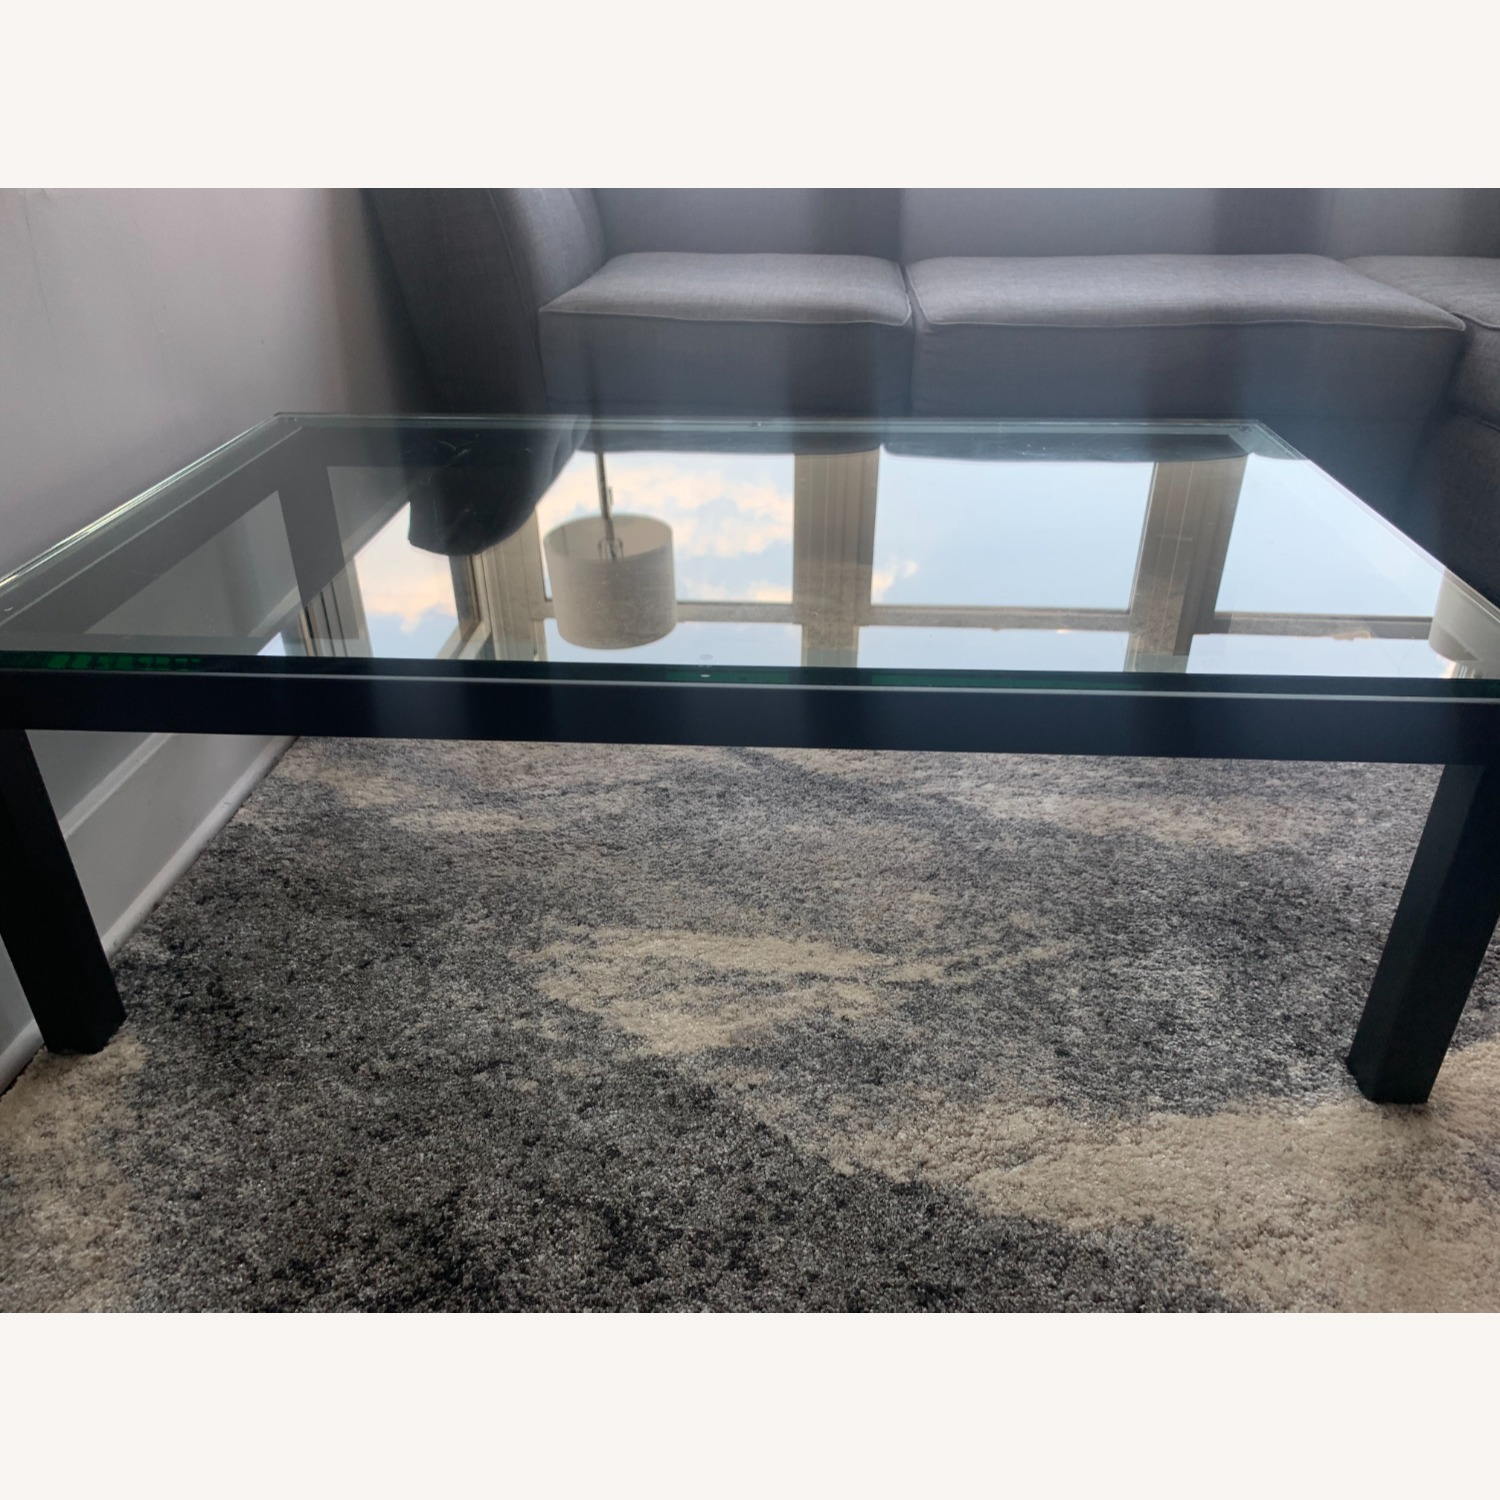 Crate and Barrel Glass Rectangular Coffee Table - image-5